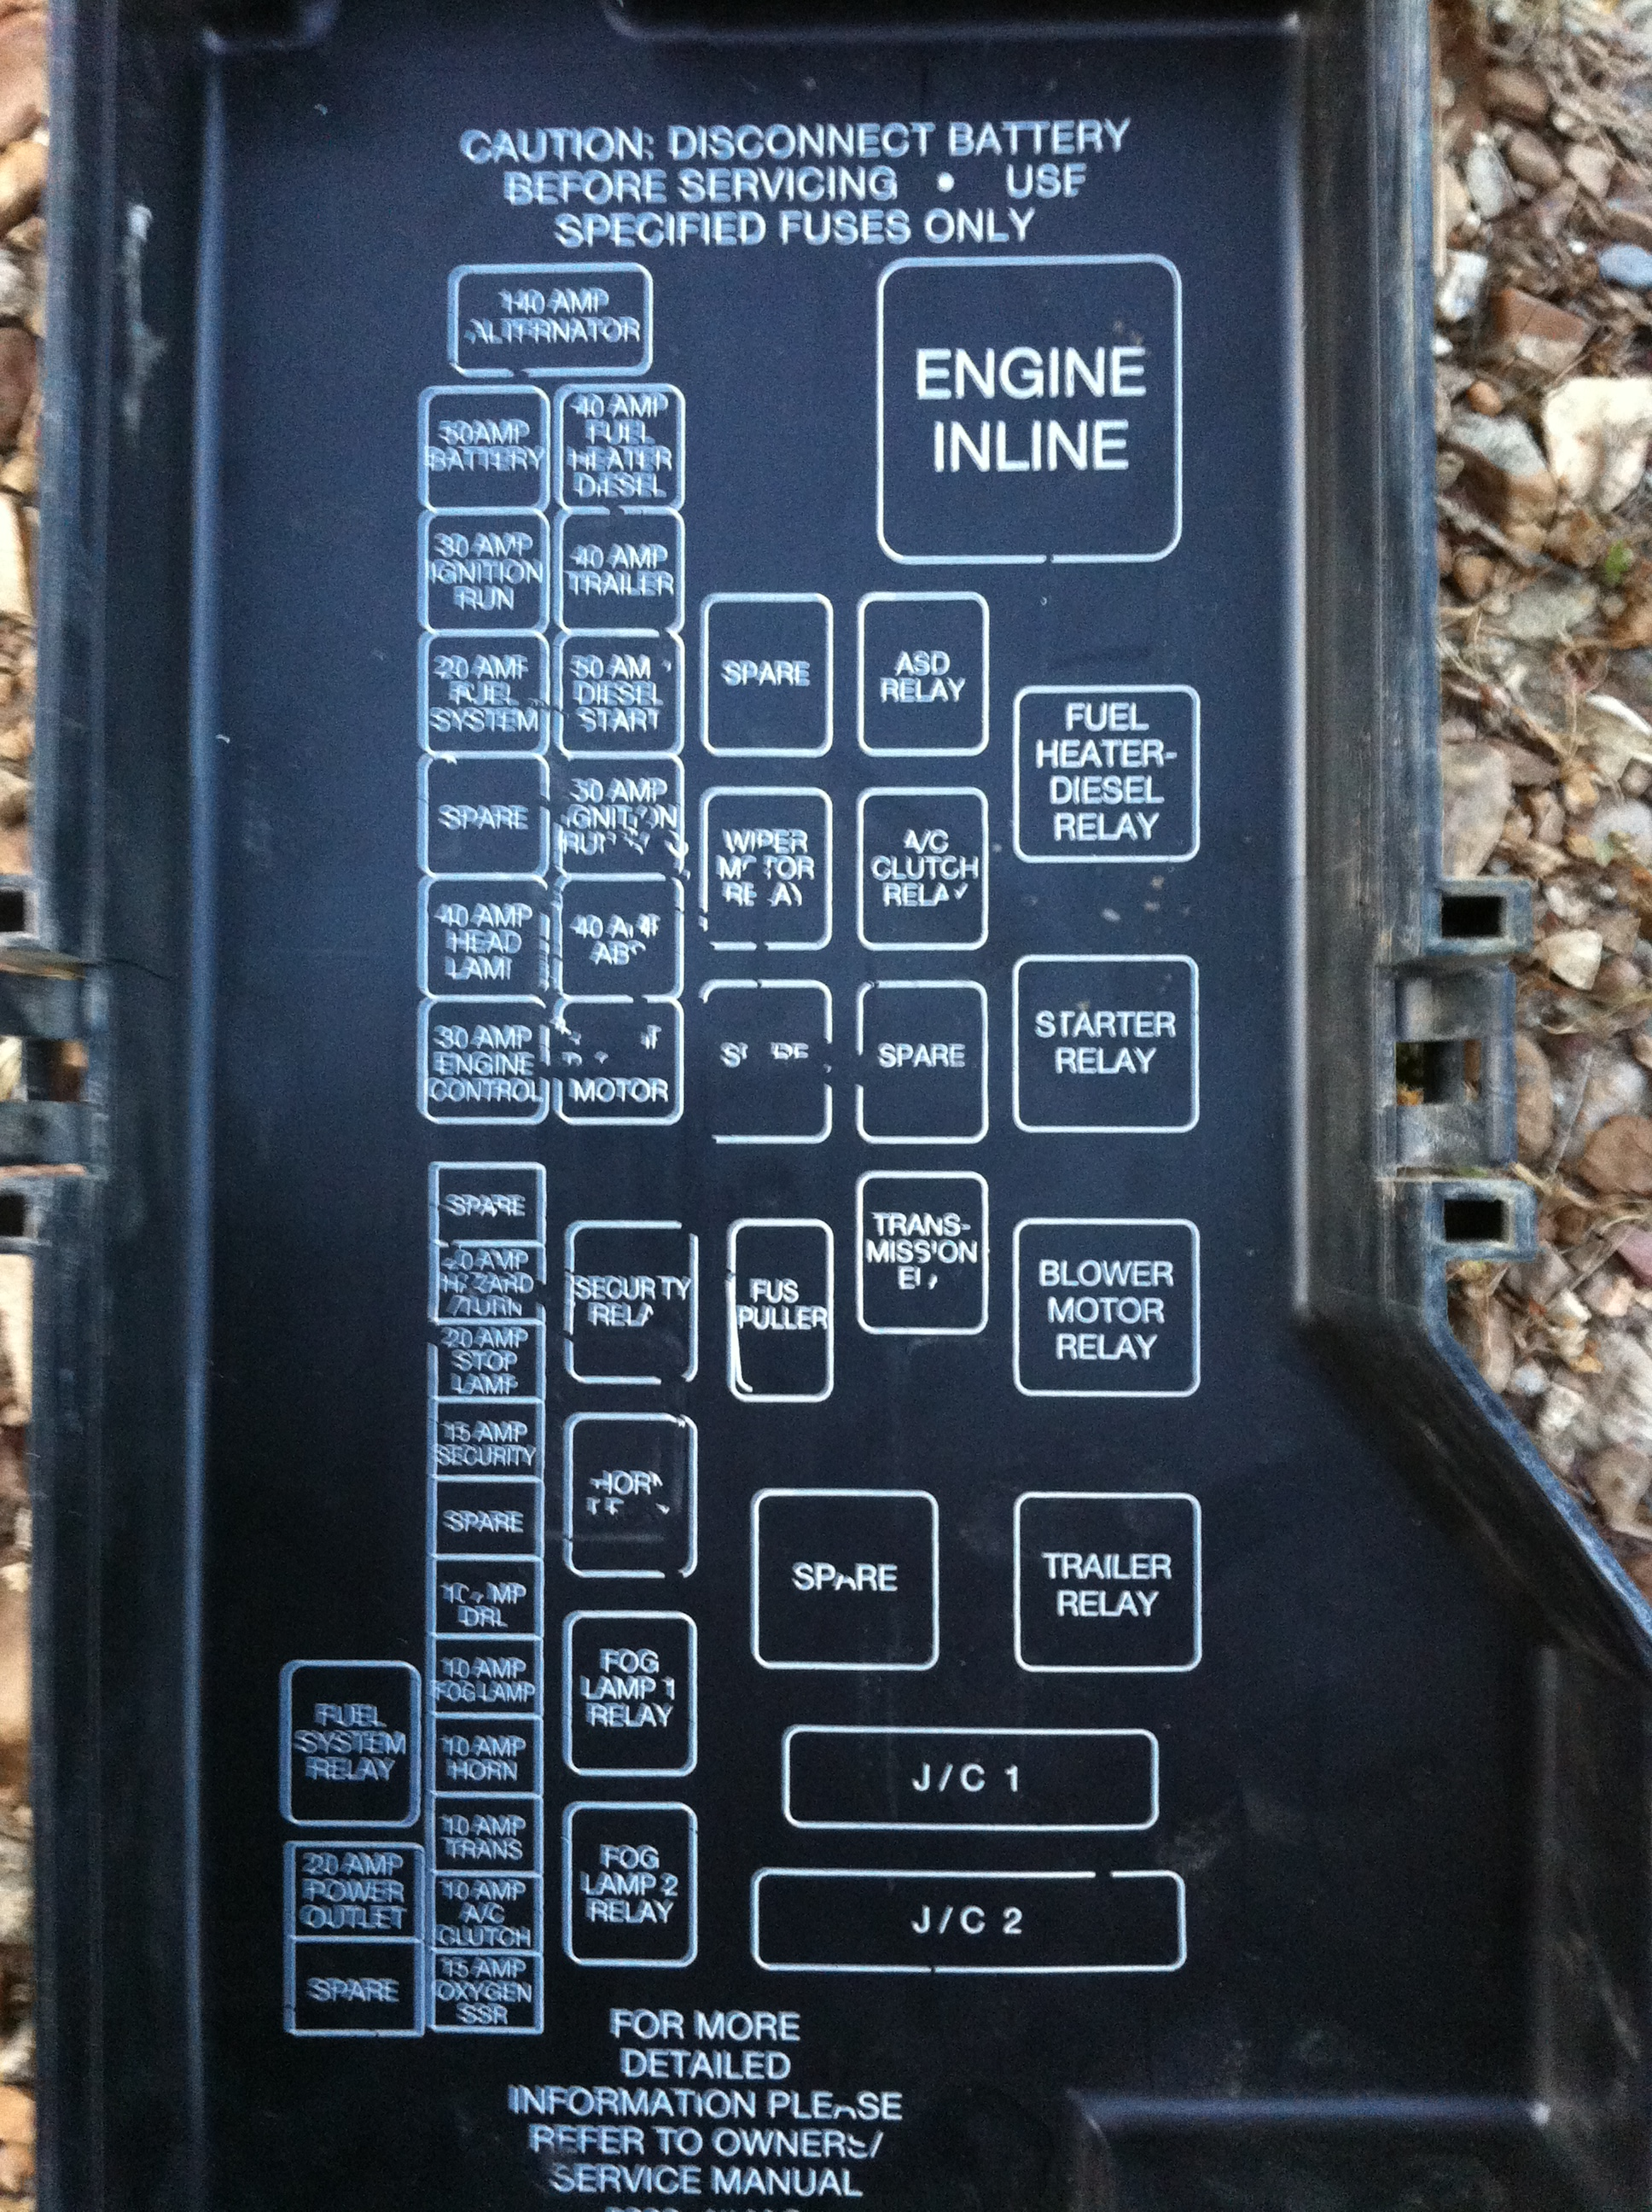 1995 Dodge Ram 1500 Fuse Box - Wiring Diagram Schema